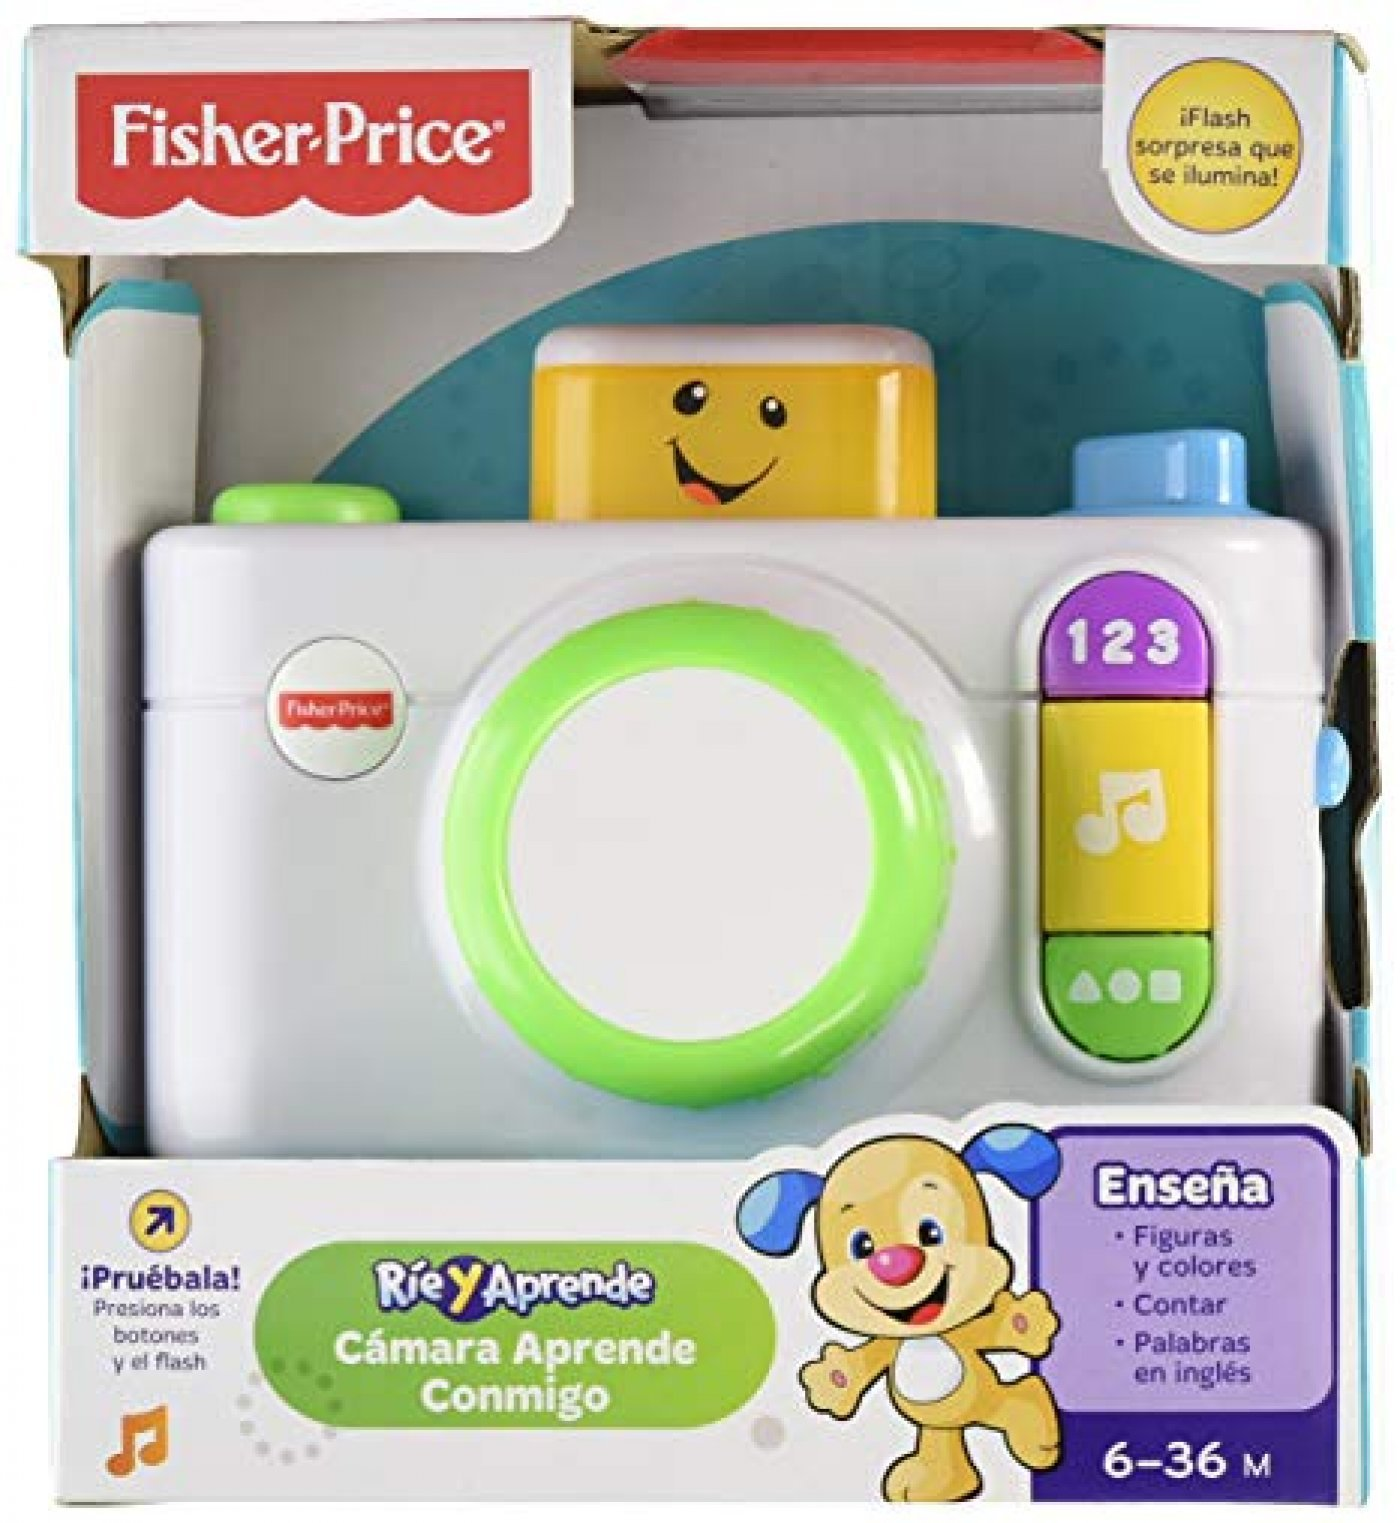 camara Aprende Conmigo Fisher Price